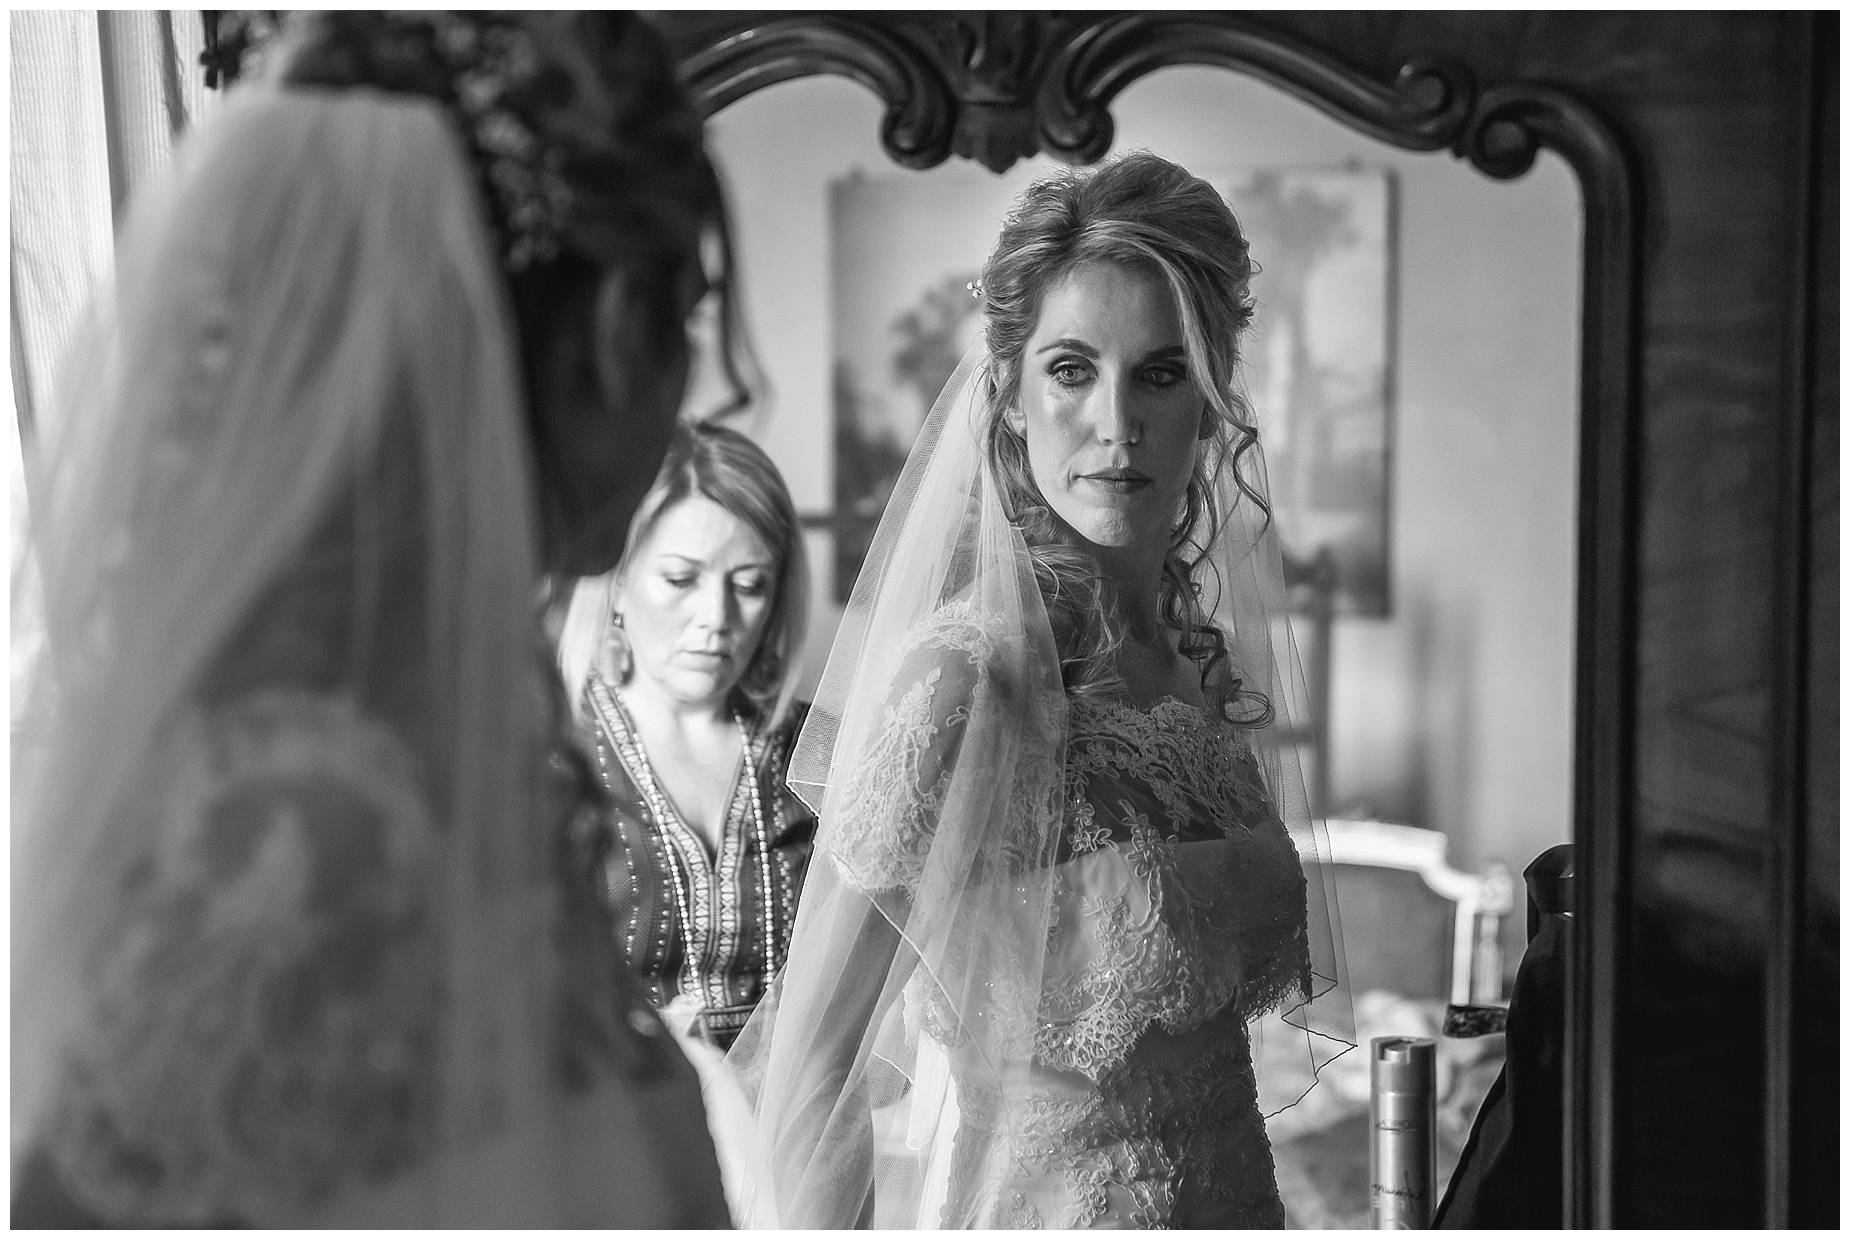 Chateau de Pouget bride getting ready in mirror